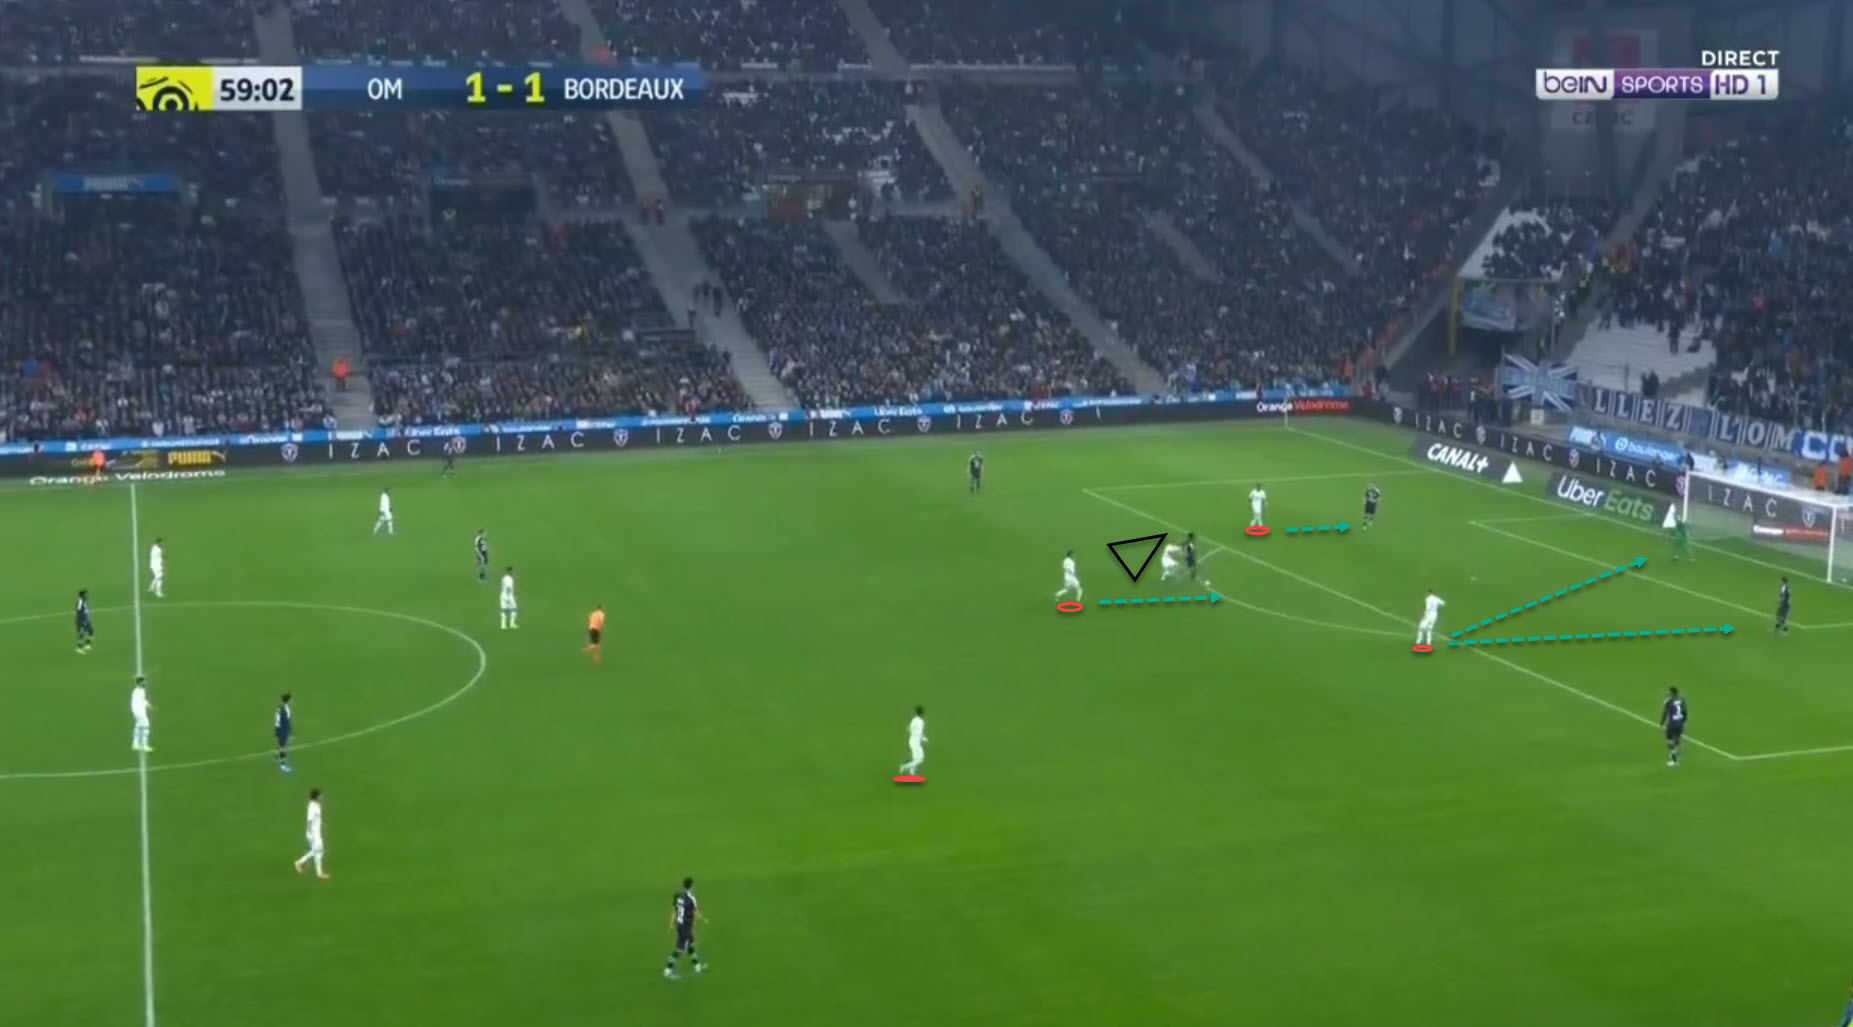 Marseille 2019/20: Their pressing - scout report - tactical analysis tactics